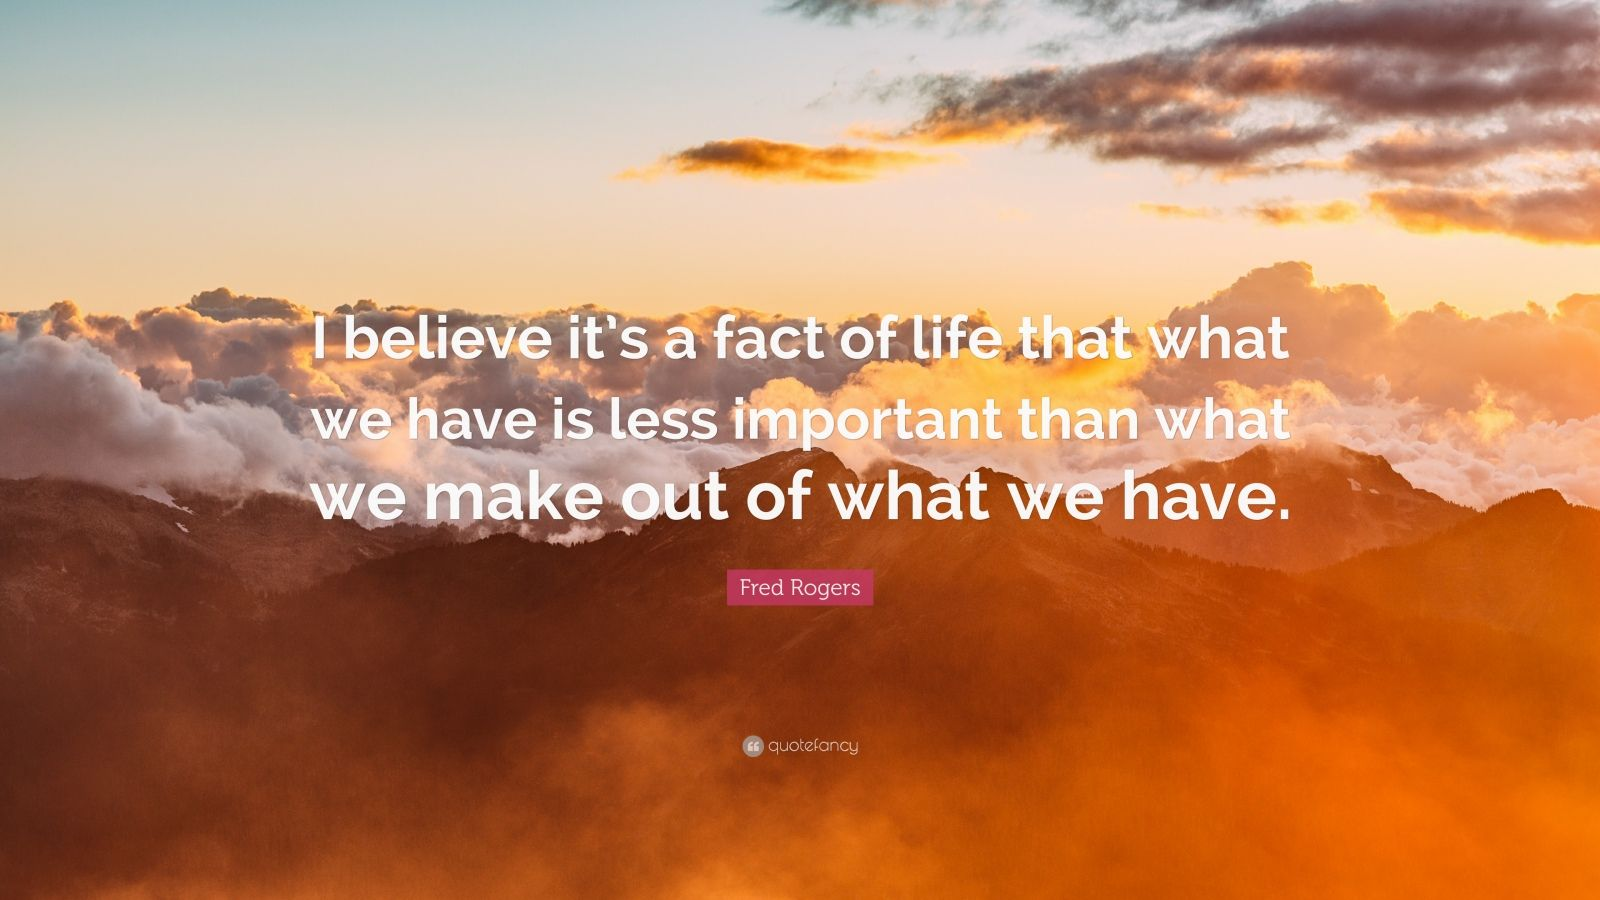 """Fred Rogers Quote: """"I believe it's a fact of life that what we have is less important than what we make out of what we have."""""""